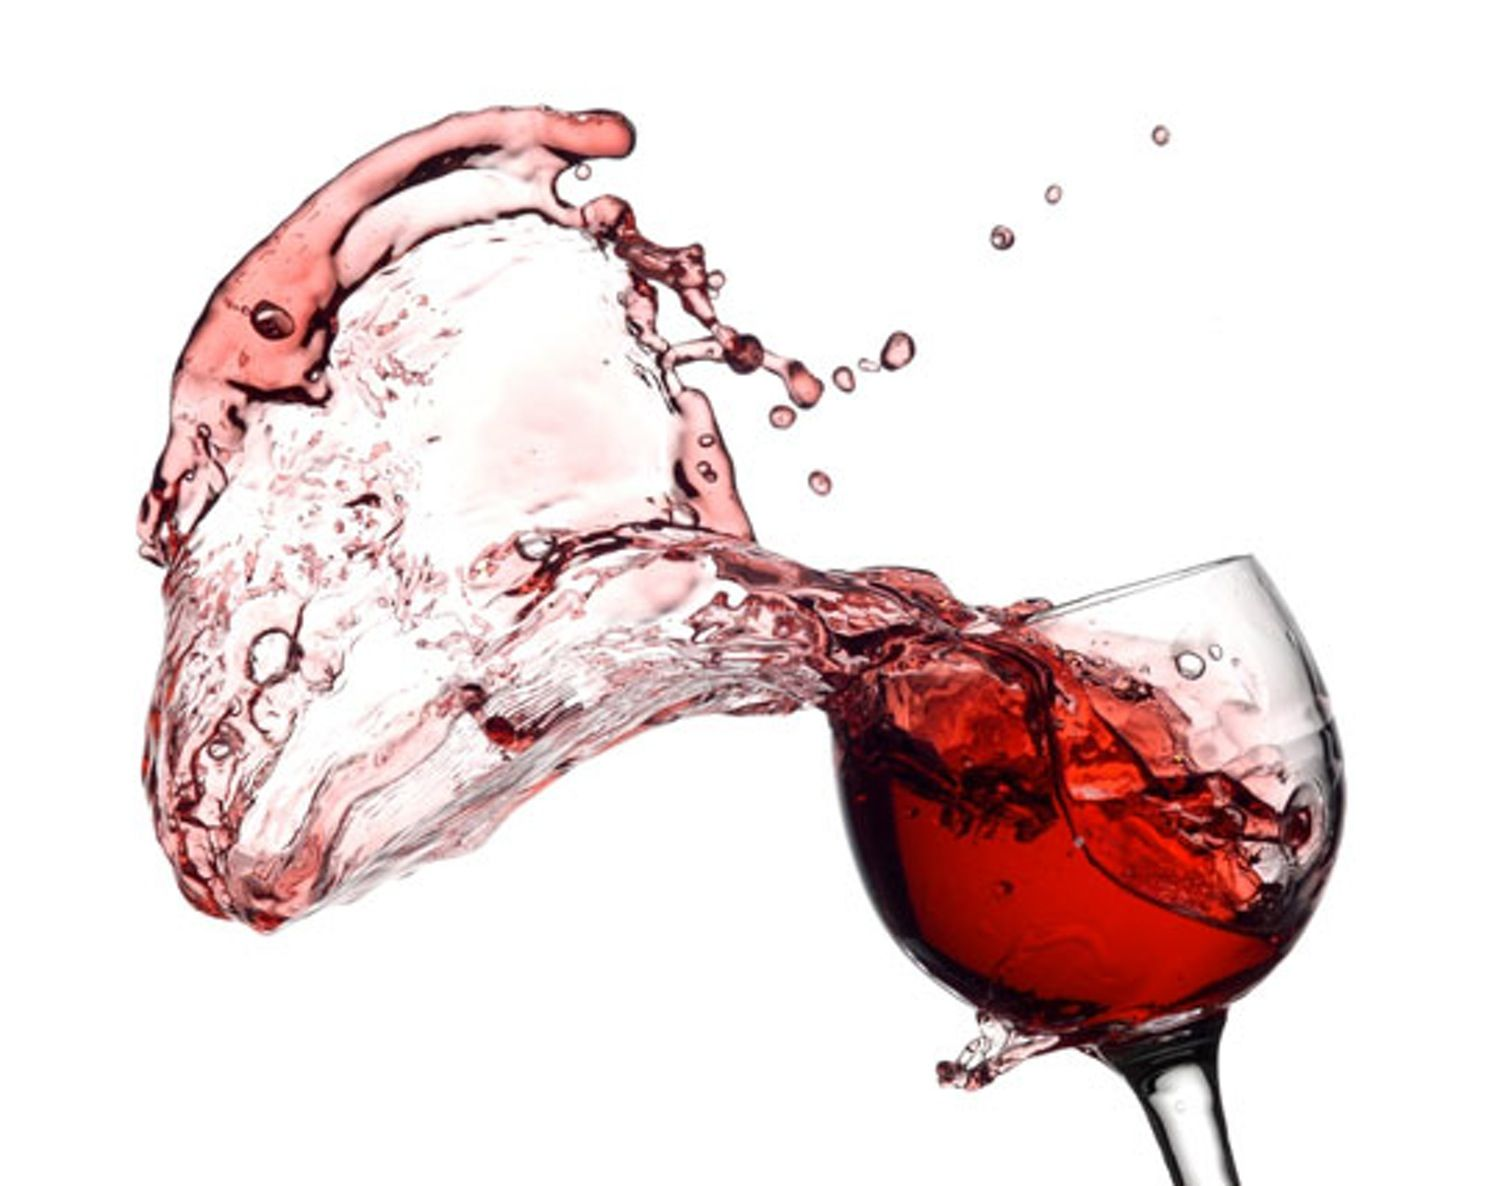 How To Remove Red Wine Stains What S Your No Fail Trick Red Wine Stains Red Wine Stain Removal Wine Stains